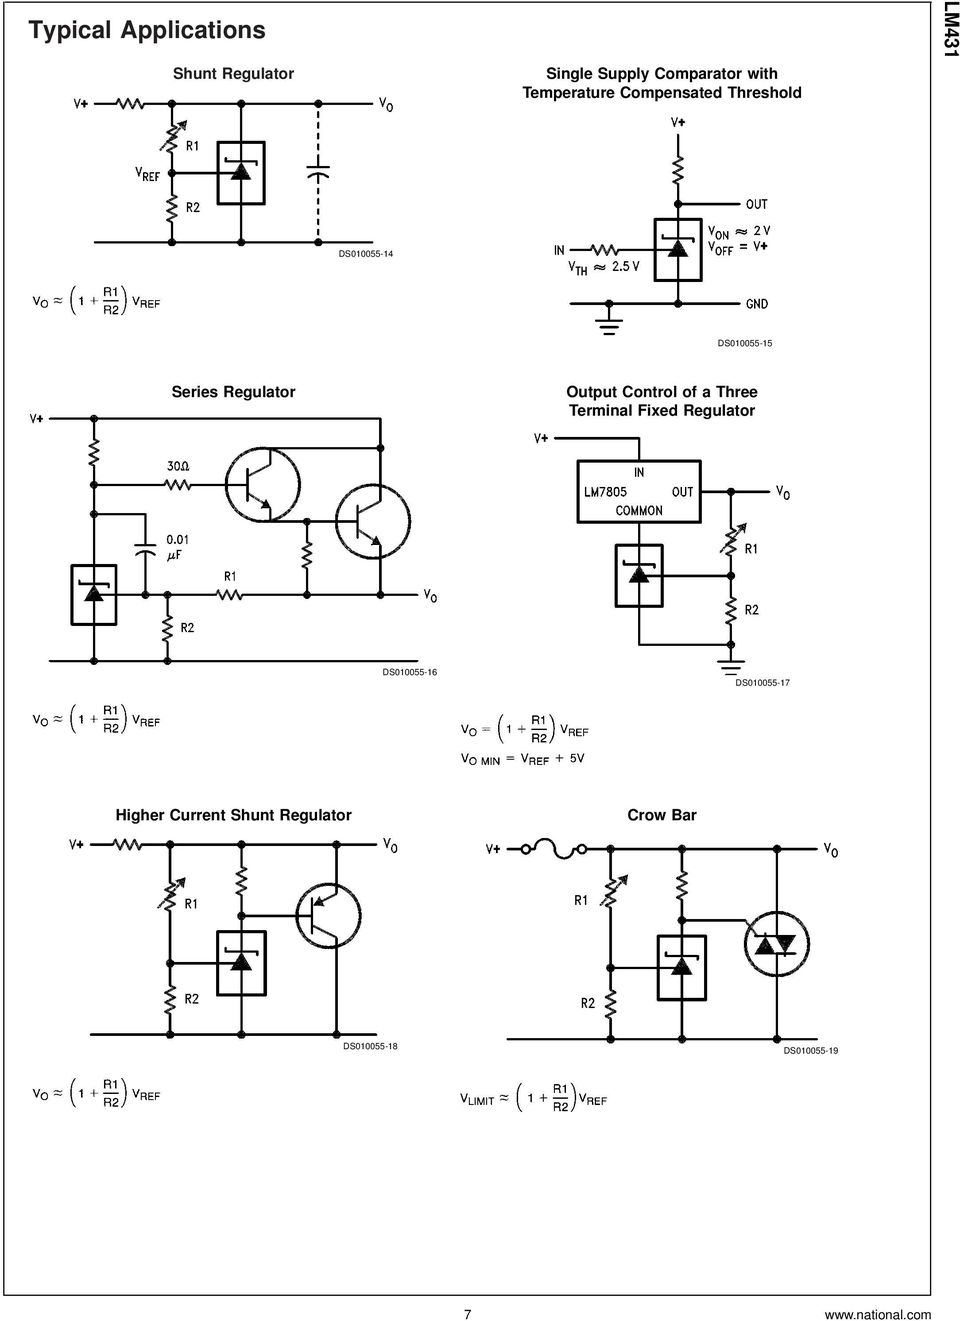 Lm431 Adjustable Precision Zener Shunt Regulator Pdf High Current Circuit Diagram Using Lm117 Output Control Of A Three Terminal Fixed Ds010055 16